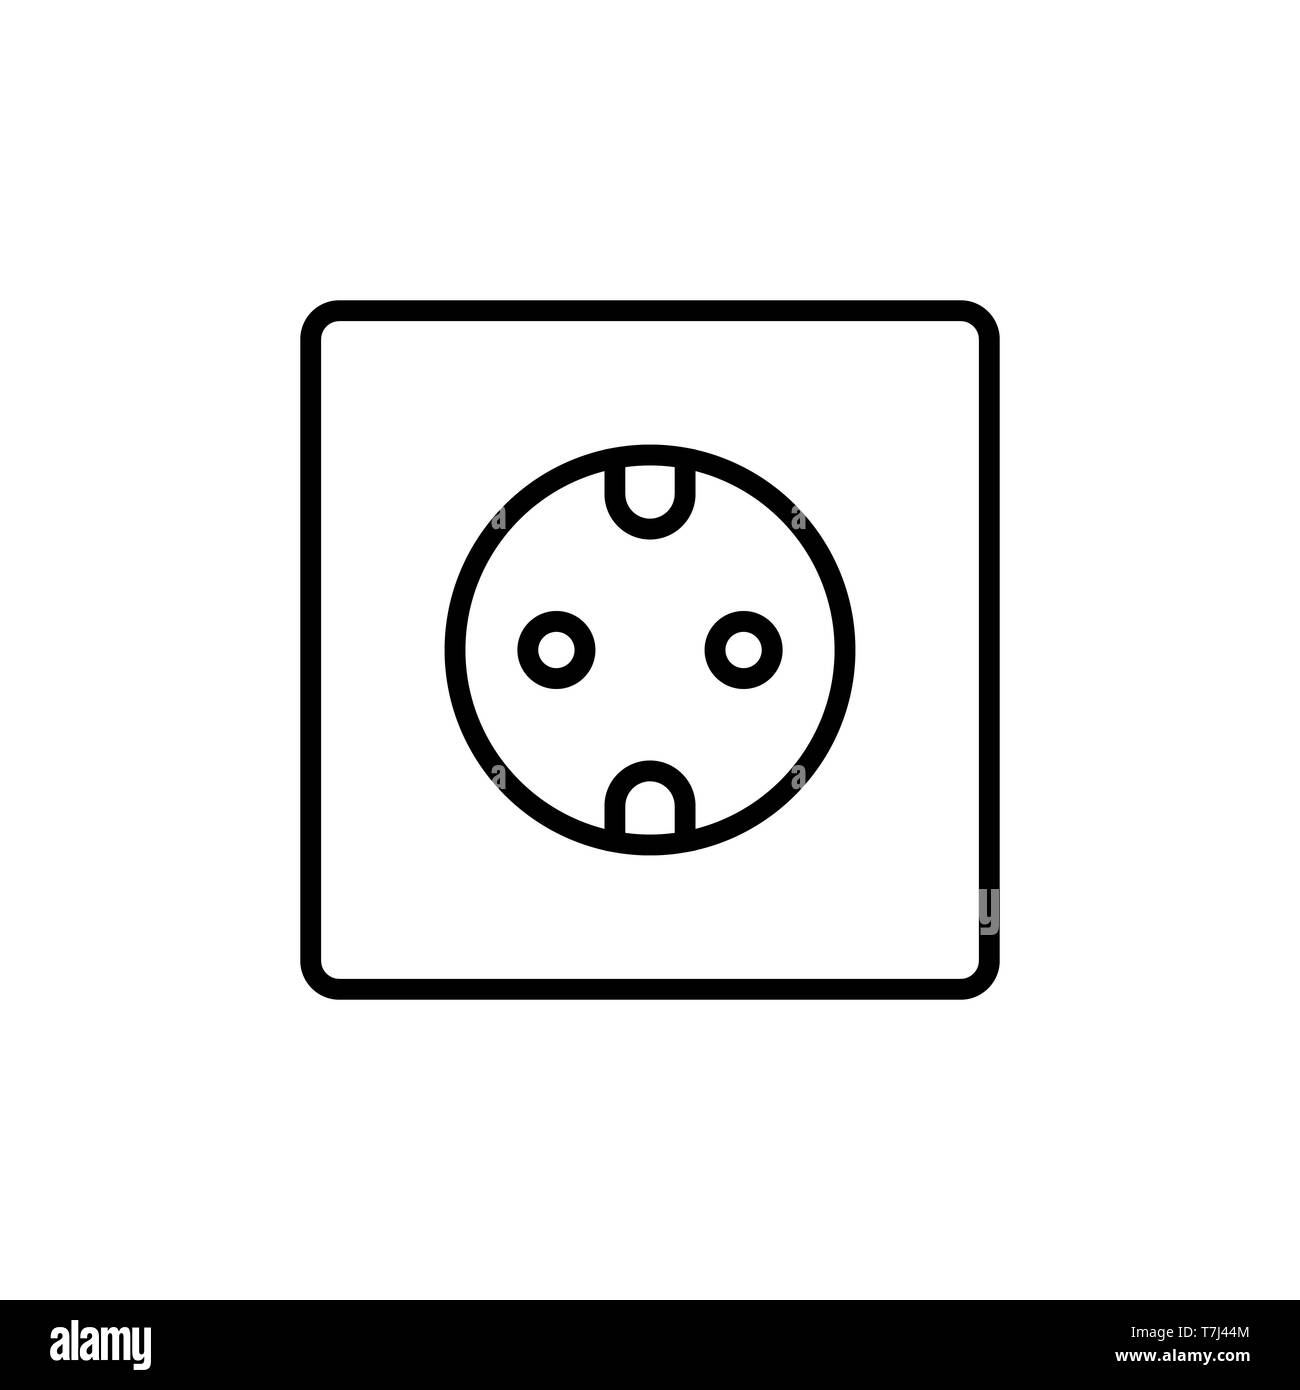 Socket line icon isolated on white background. Outline thin ... on outlet switch, electrical stimulator, exterior electrical wiring, bad electrical wiring, electrical muscle stimulator, electrical panel wiring, electrical estimating, electrical motor, electrical wiring in north america, electrical plug, electrical work, open neutral in electrical wiring, electrical install, residential electrical wiring, replacing electrical outlets, electrical receptacles, scary electrical wiring, new electrical wiring, electrical switches wiring, electrical retail, electrical lighting wiring, electrical generator, electrical tests, electrical standards, electrical store, installing a new electrical outlet, electrical troubleshooting, british electrical wiring, circuit breaker wiring, electrical wall outlets, electrical wiring installation, basic electrical wiring, electrical wiring diagram, electrical switch wiring, electrical safety, roughing in electrical wiring, electrical socket, home wiring, electrical suppliers,